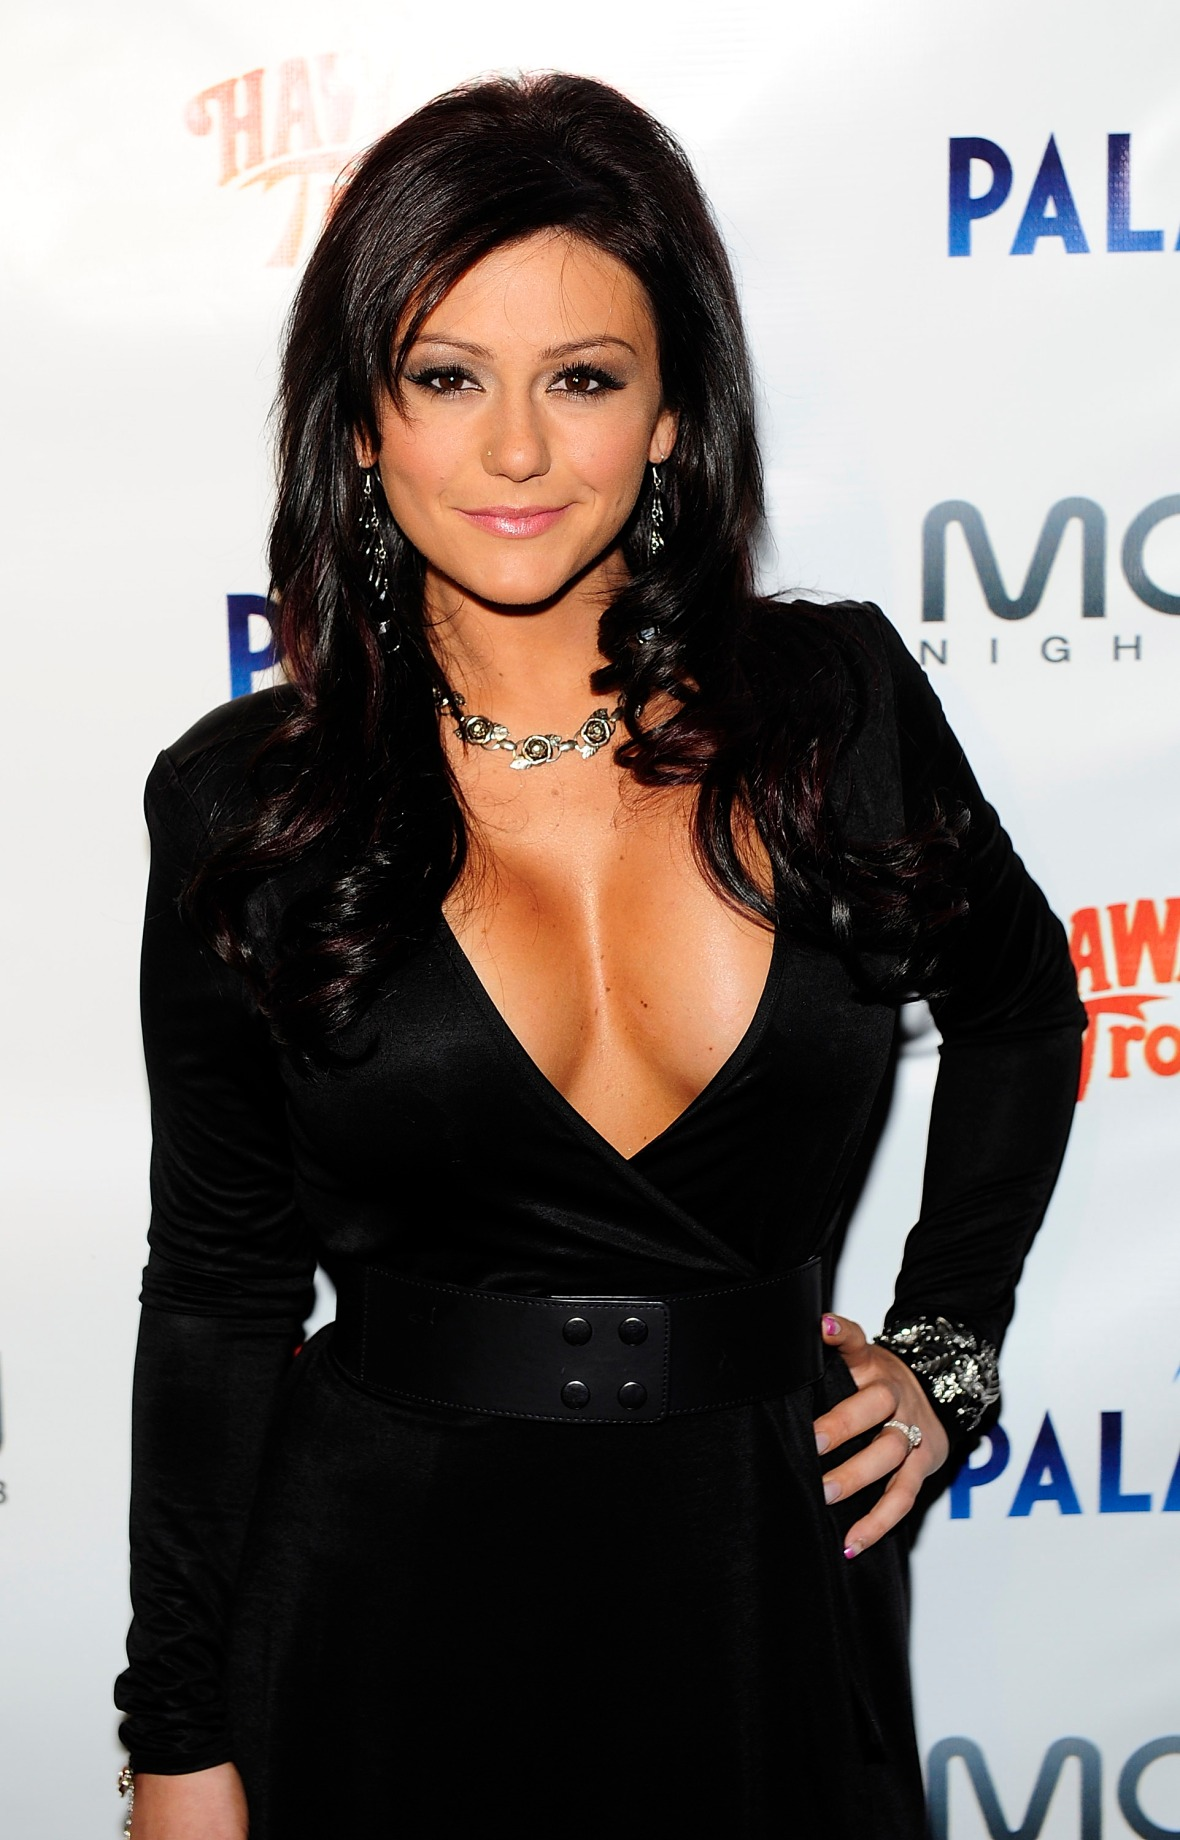 Angelina Jersey Shore Sexy jersey shore' jwoww plastic surgery: inside her new look